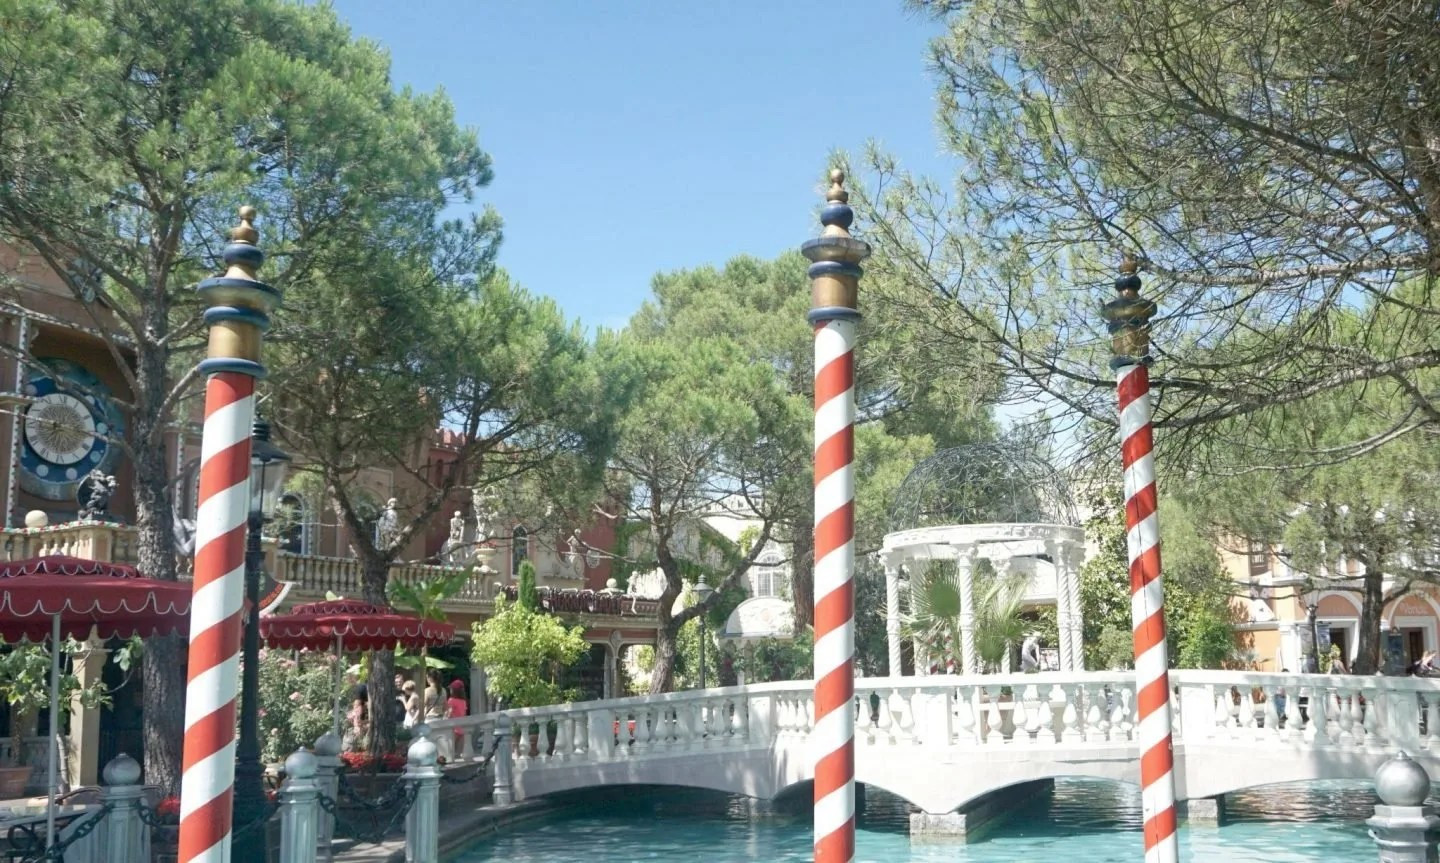 Wandering through what feel like Venice is but with wondeful rides to keep the kids happy is the best feeling at Europa-Park www.extraordinarychaos.com